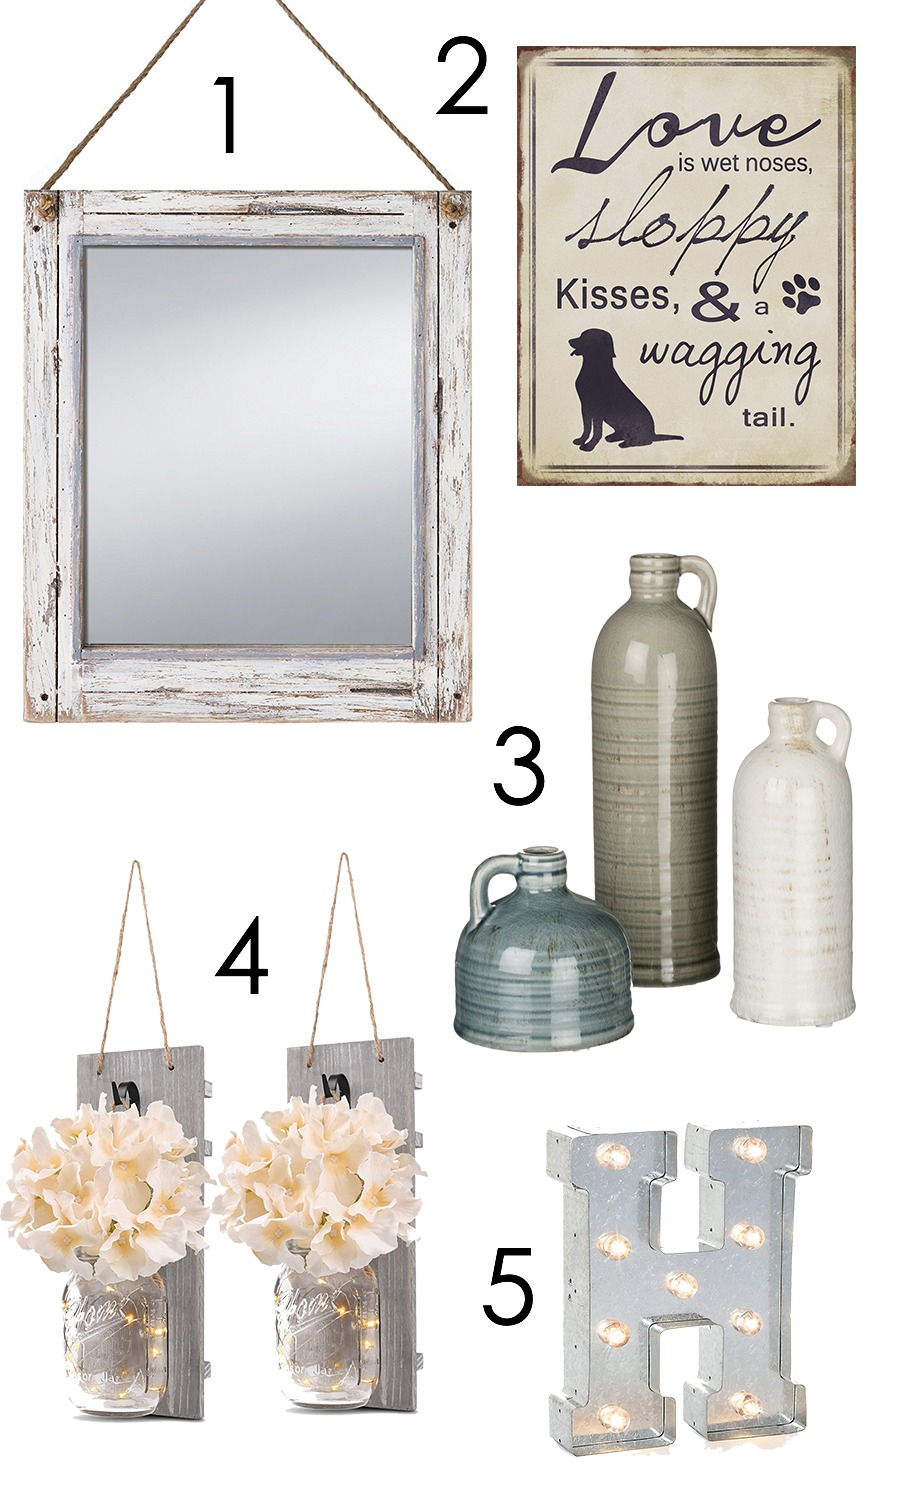 Rustic Home Decor Picks from Amazon I DreaminLace.com #HomeDecor #Rustic #AffordableHomeDecor #BudgetDeco